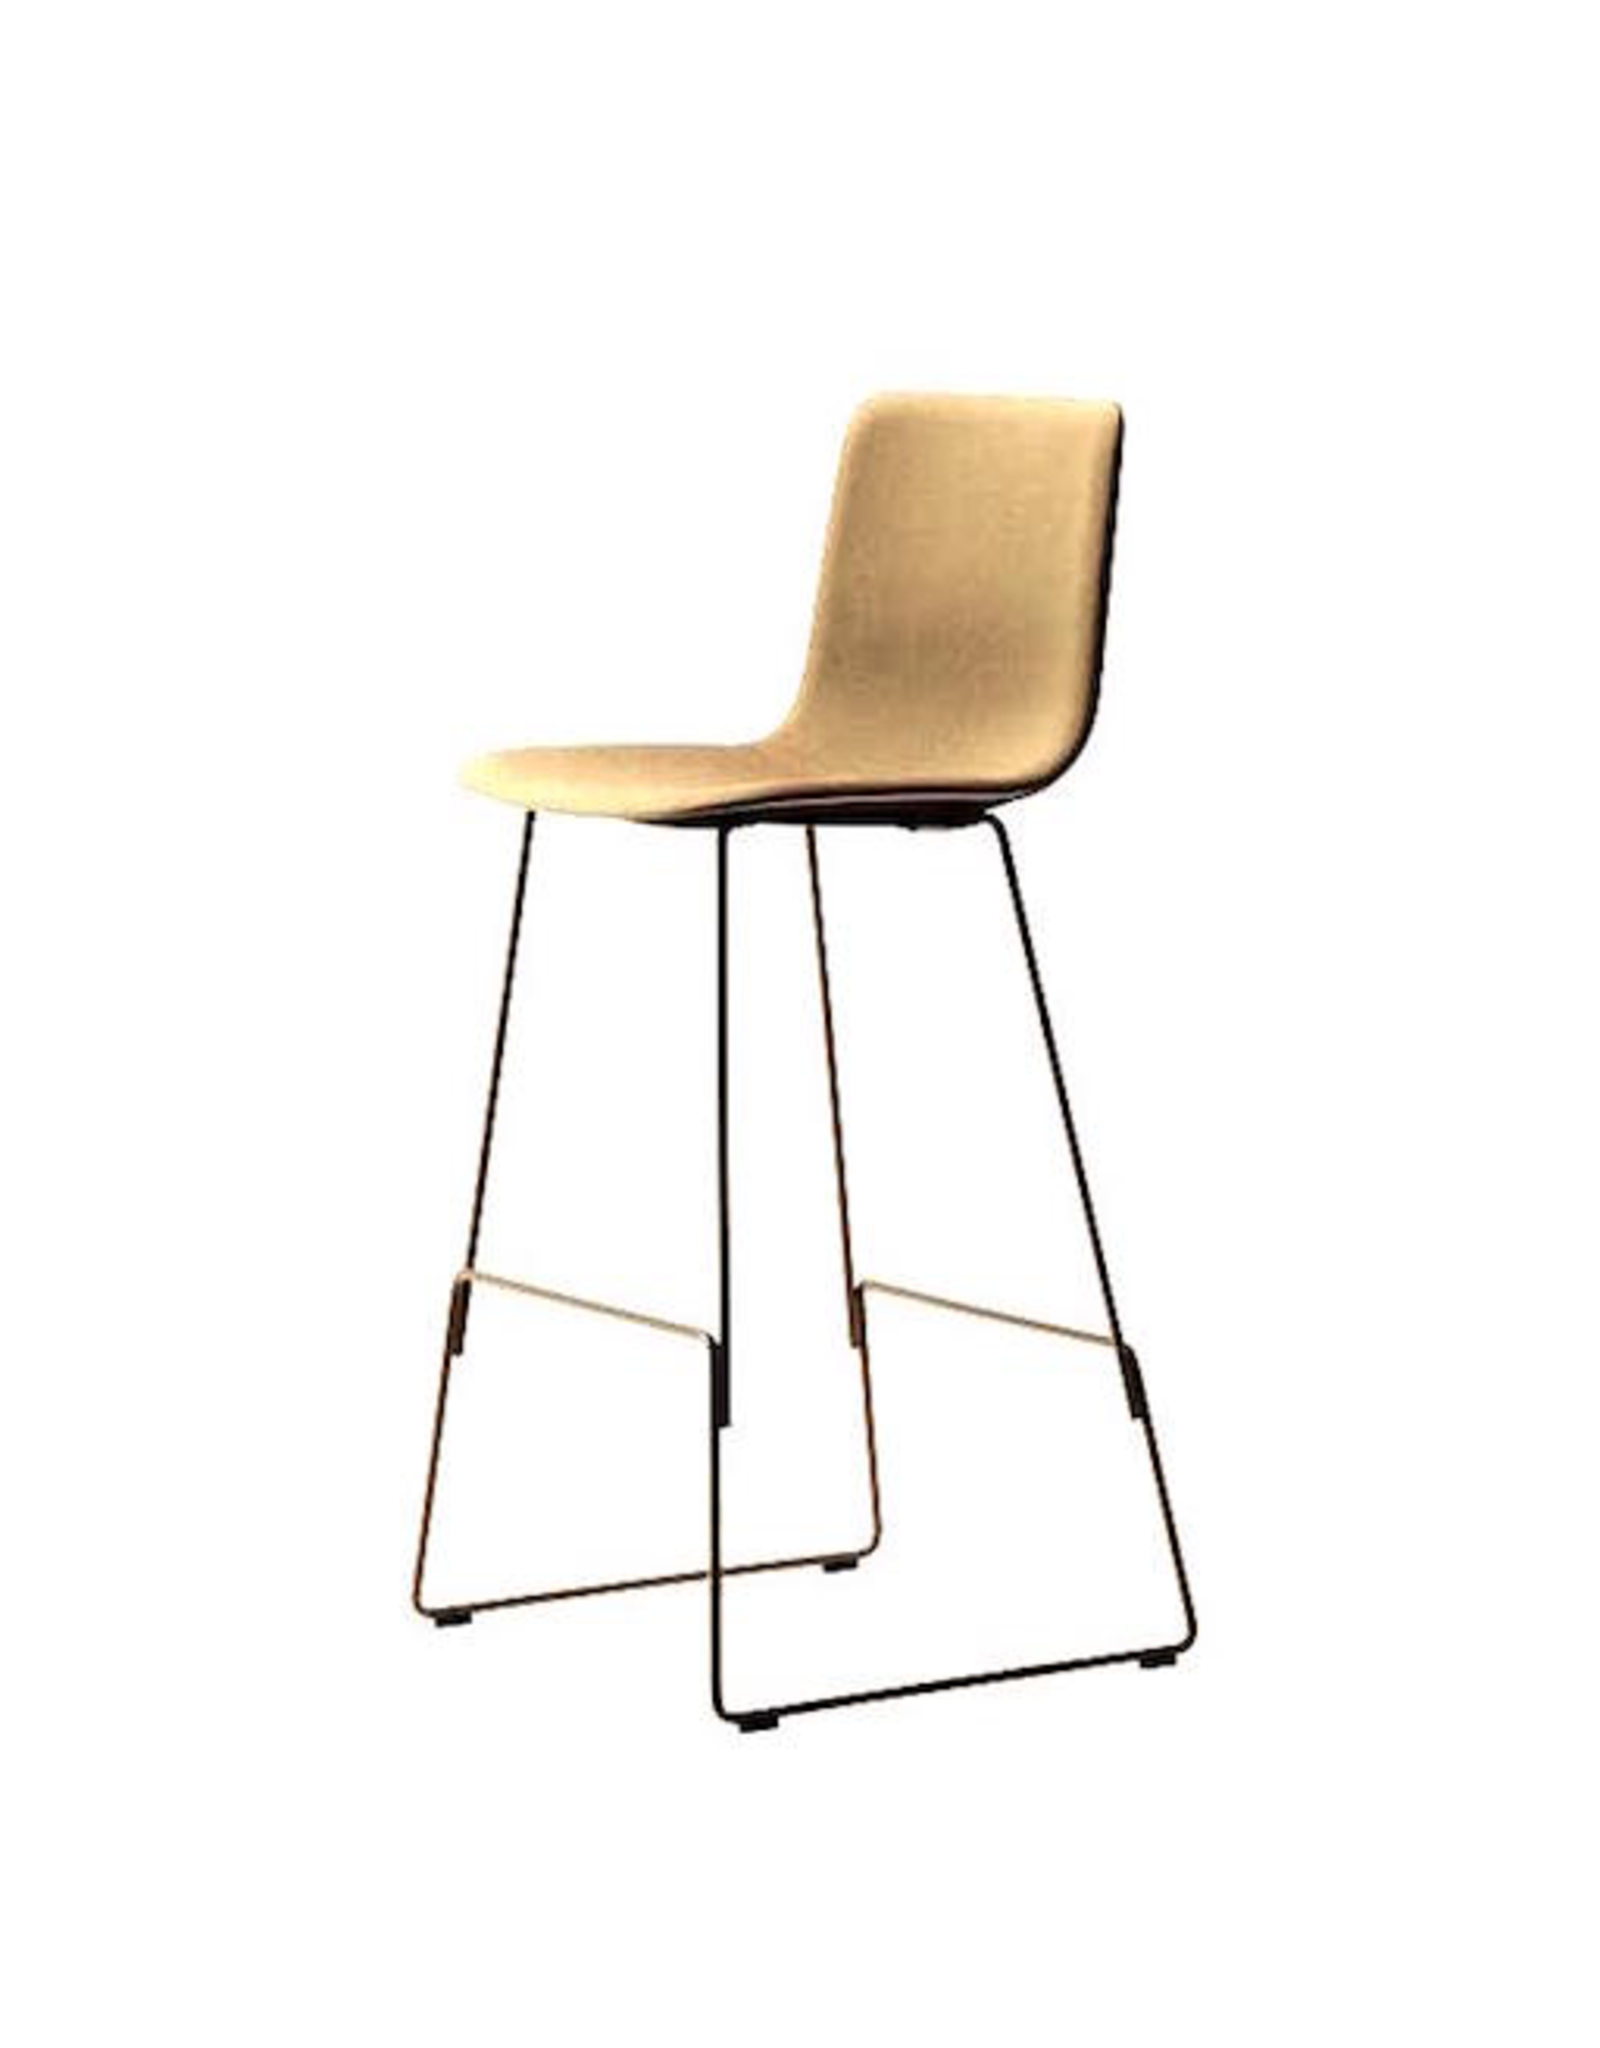 4302 PATO BARSTOOL, FULLY UPHOLSTERED IN WALNUT LEATHER